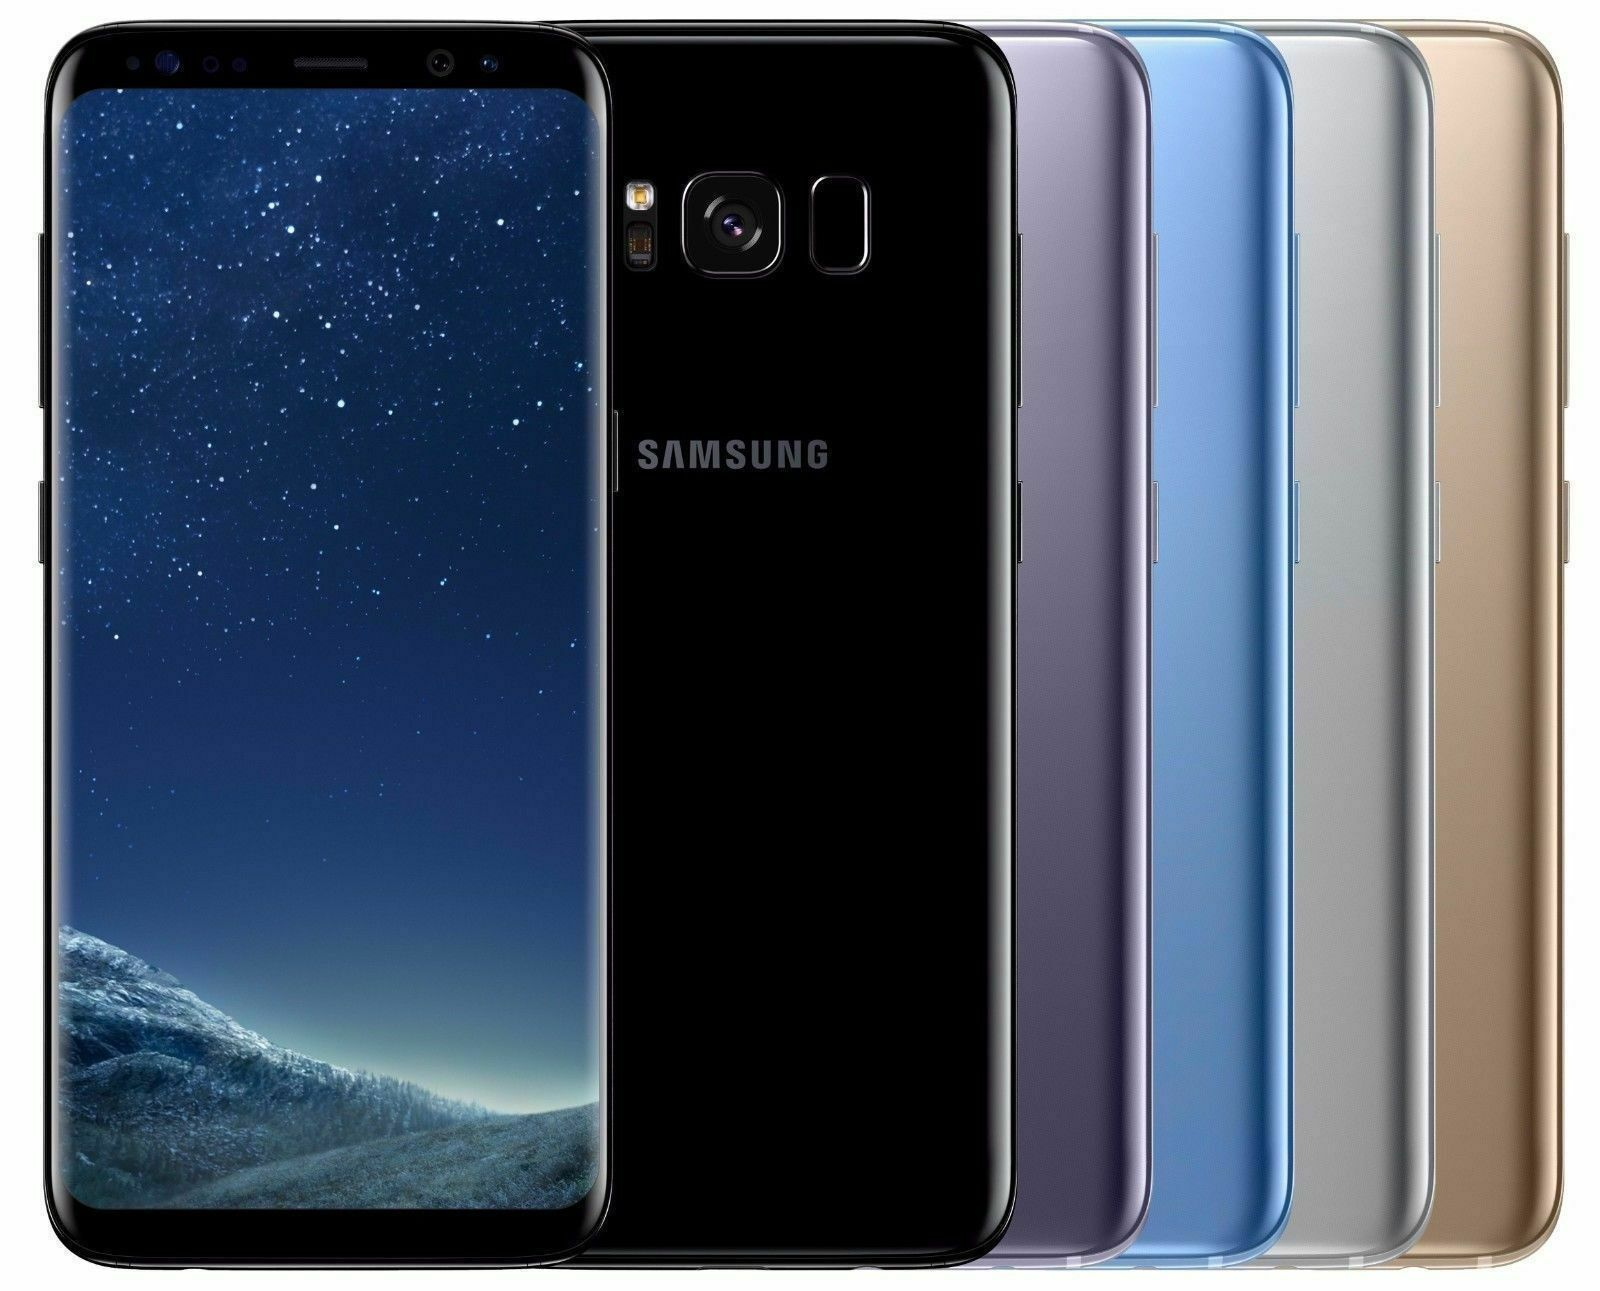 Android Phone - FULLY UNLOCKED Samsung Galaxy S8 64GB CDMA+GSM (SM-G950U) All Colors